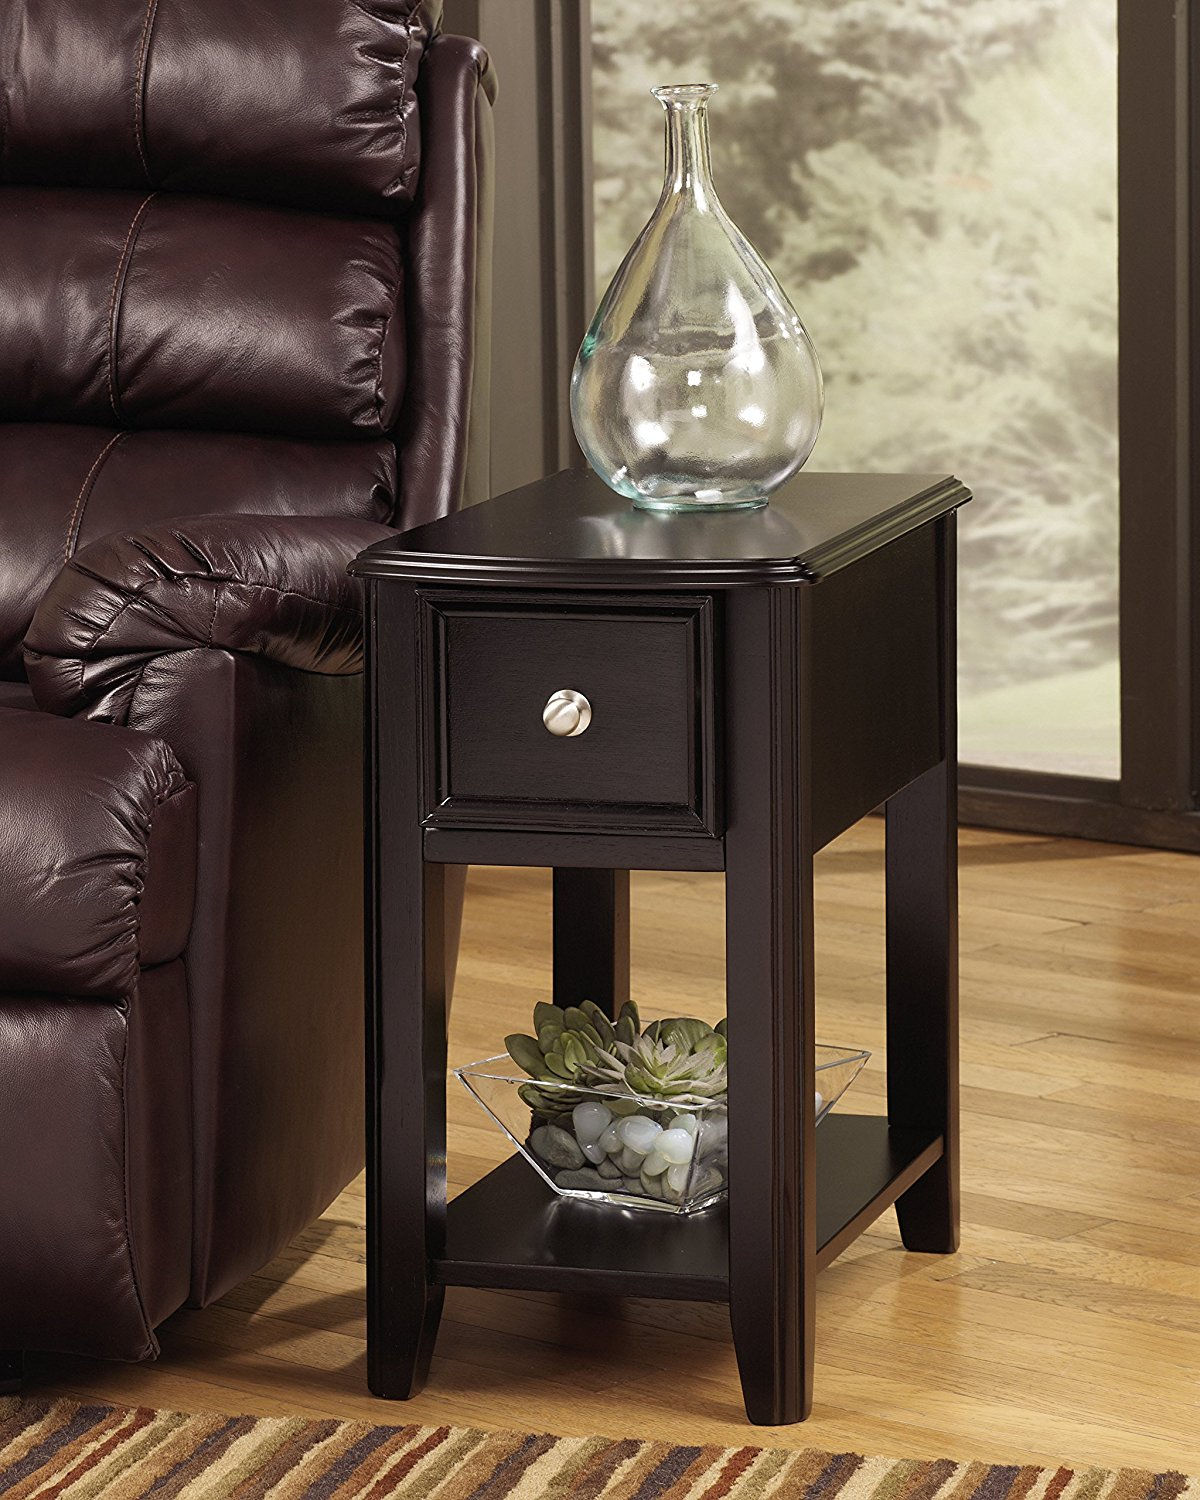 terrific small side table options for your living room ashley signature design breegin chair end dark wood tables furniture rectangular with nickel tone hardware and diy pallet